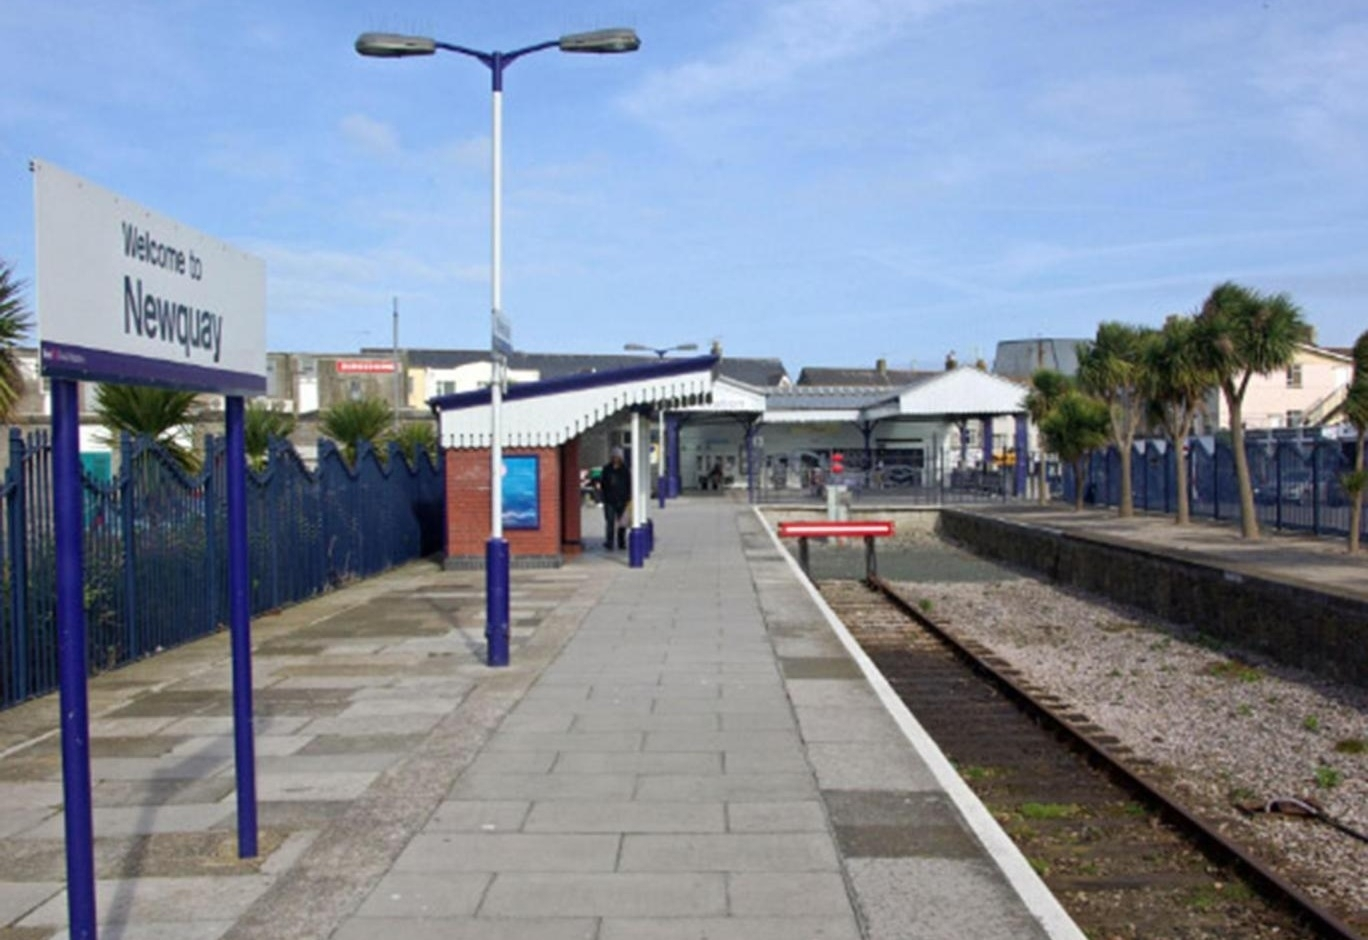 newquay station